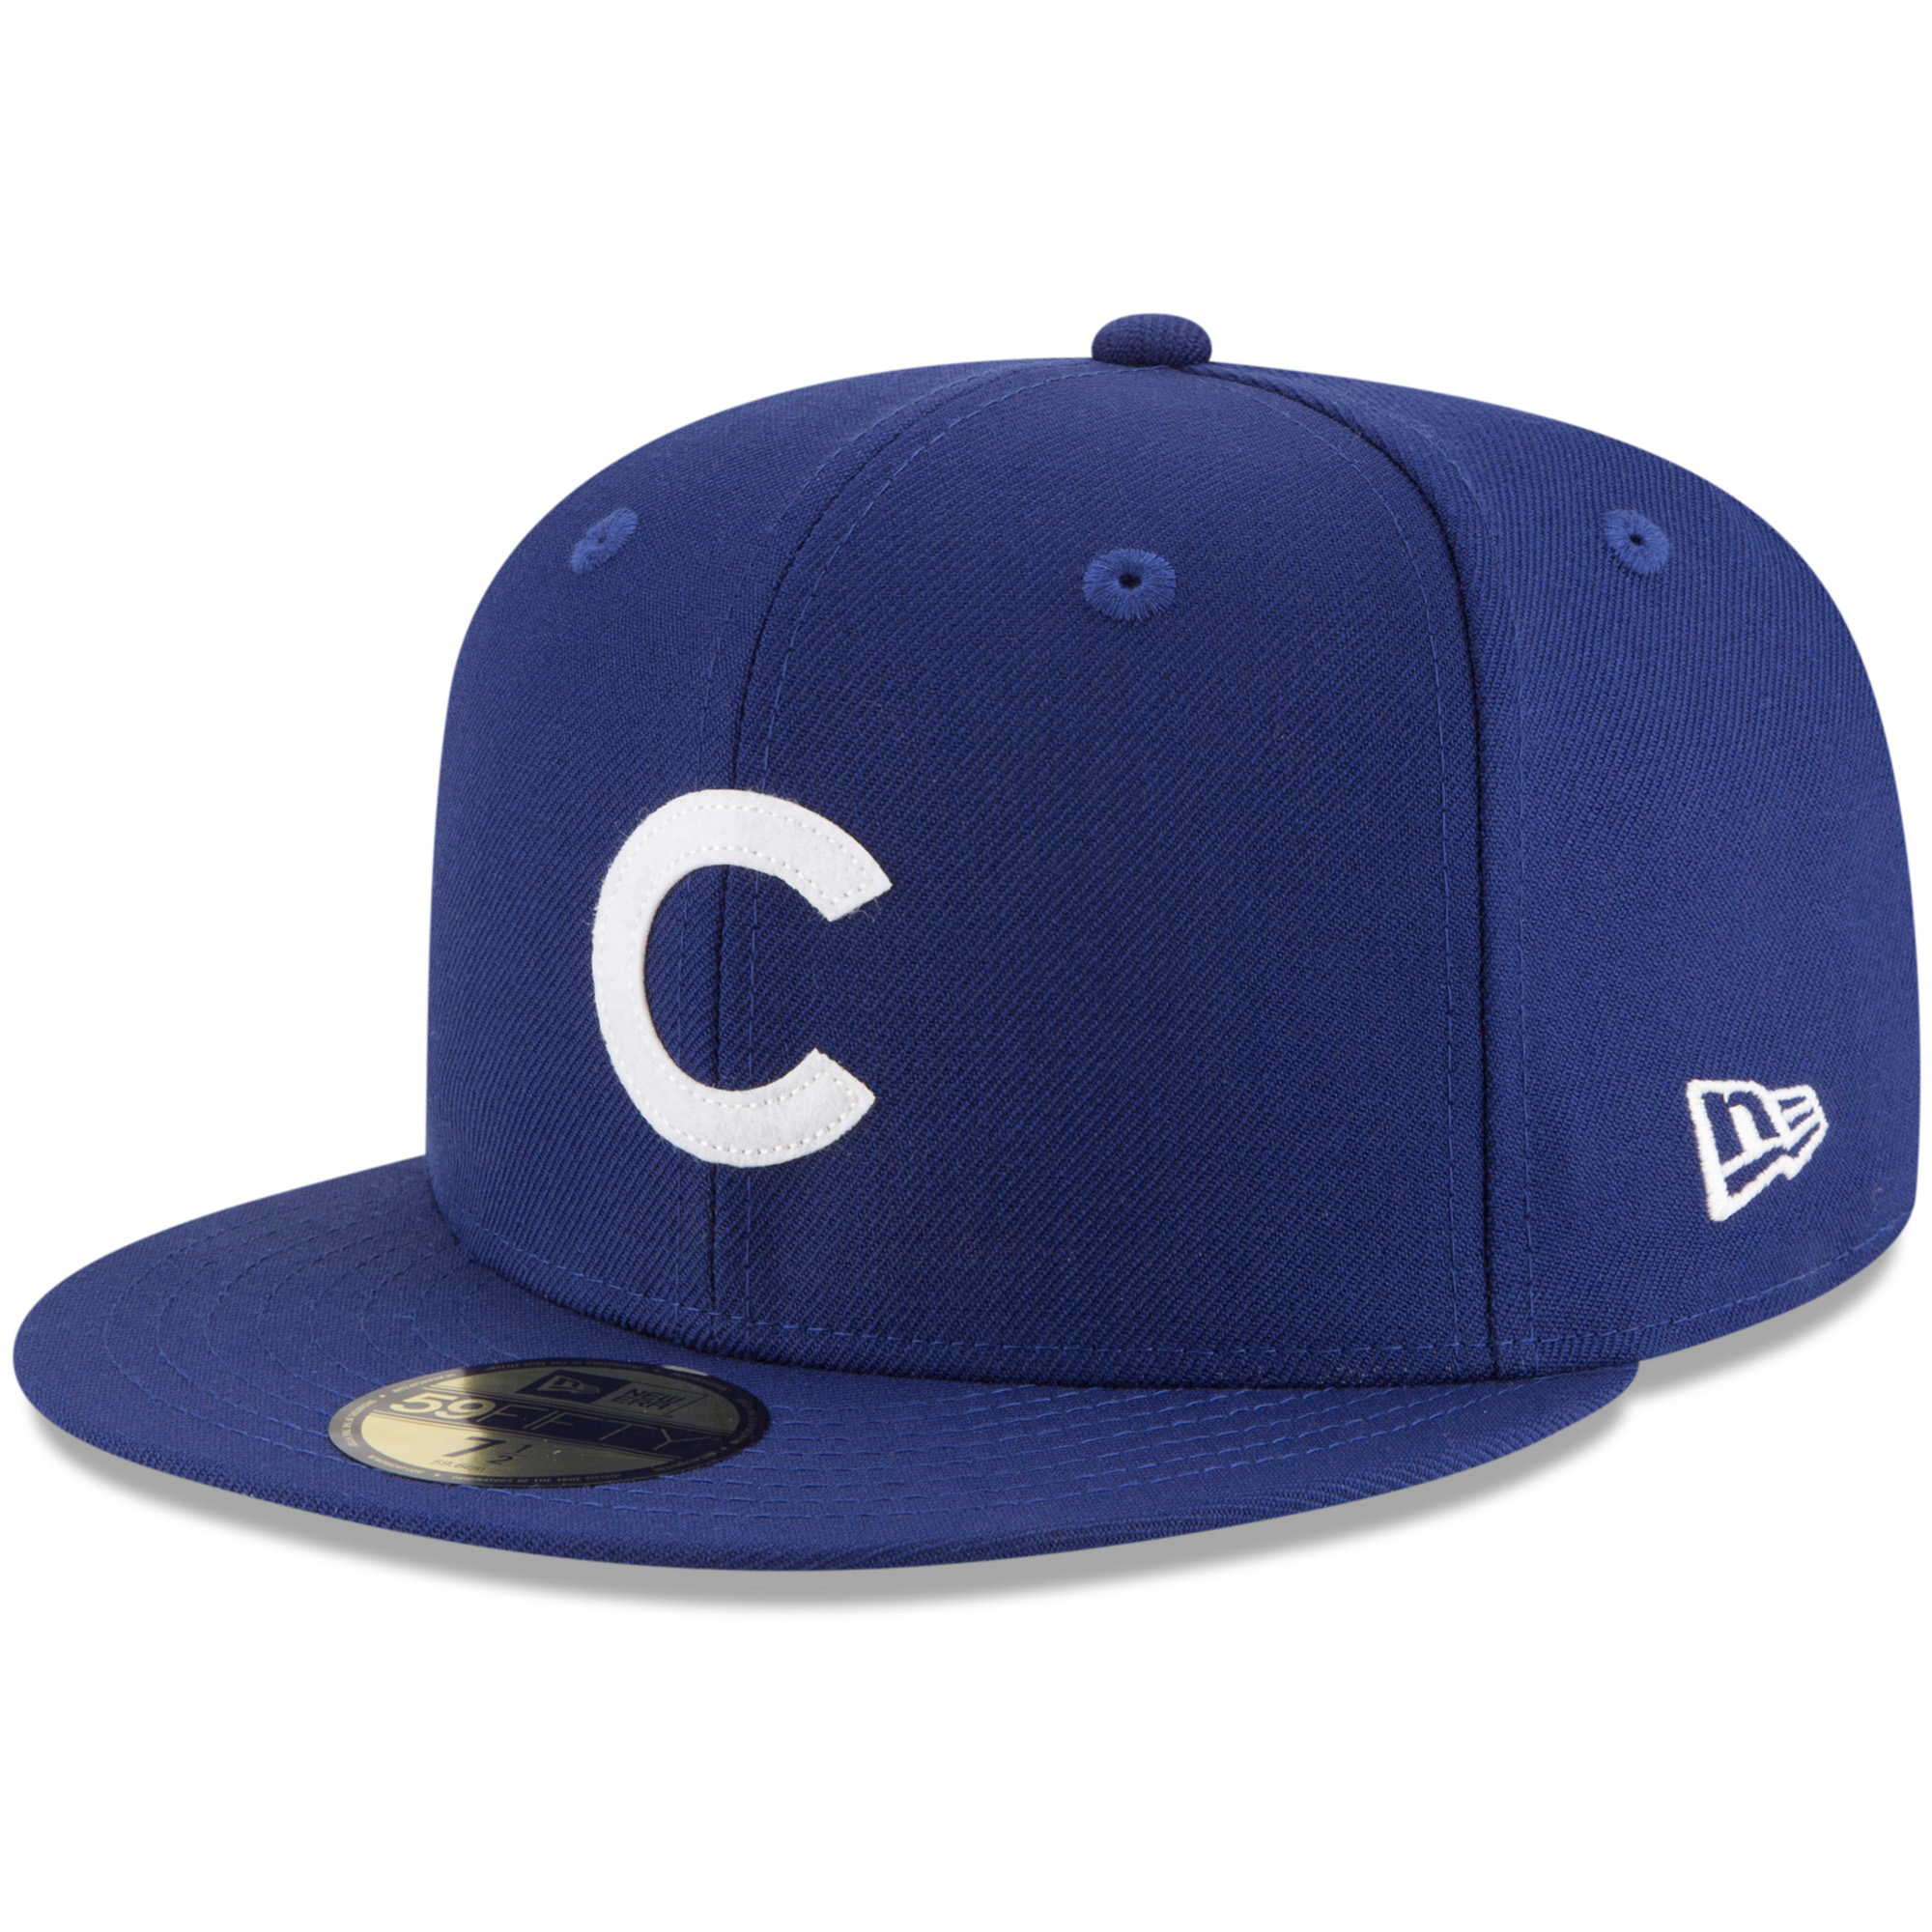 Chicago Cubs New Era Cooperstown Inaugural Season 59FIFTY Fitted Hat - Royal